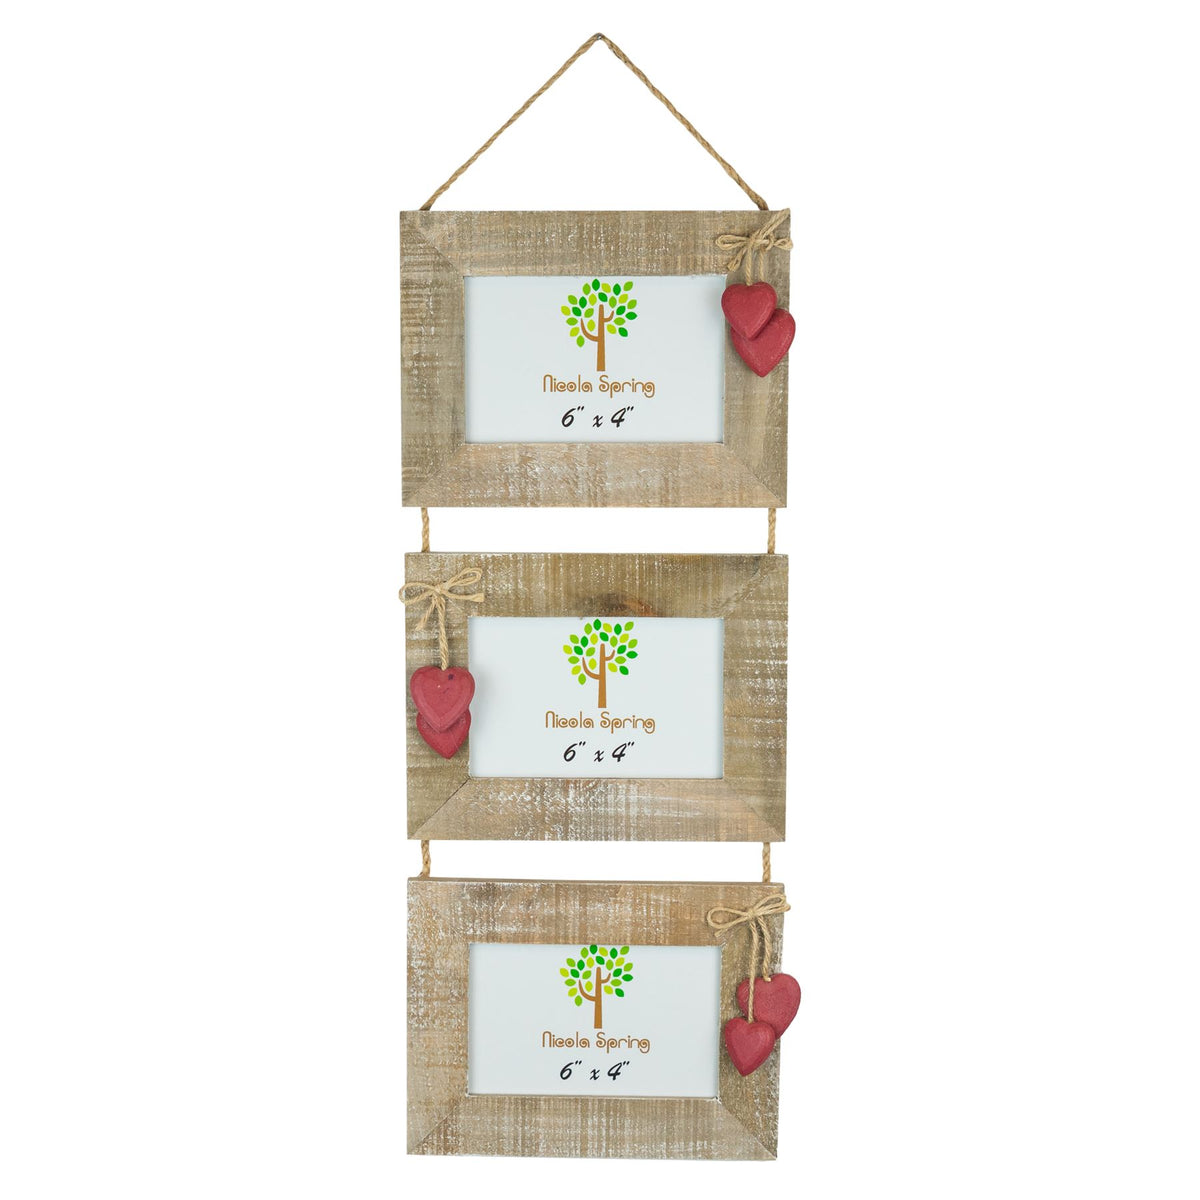 Nicola Spring Triple Wooden Hanging Picture Frame - 6x4 - Natural with Red Hearts